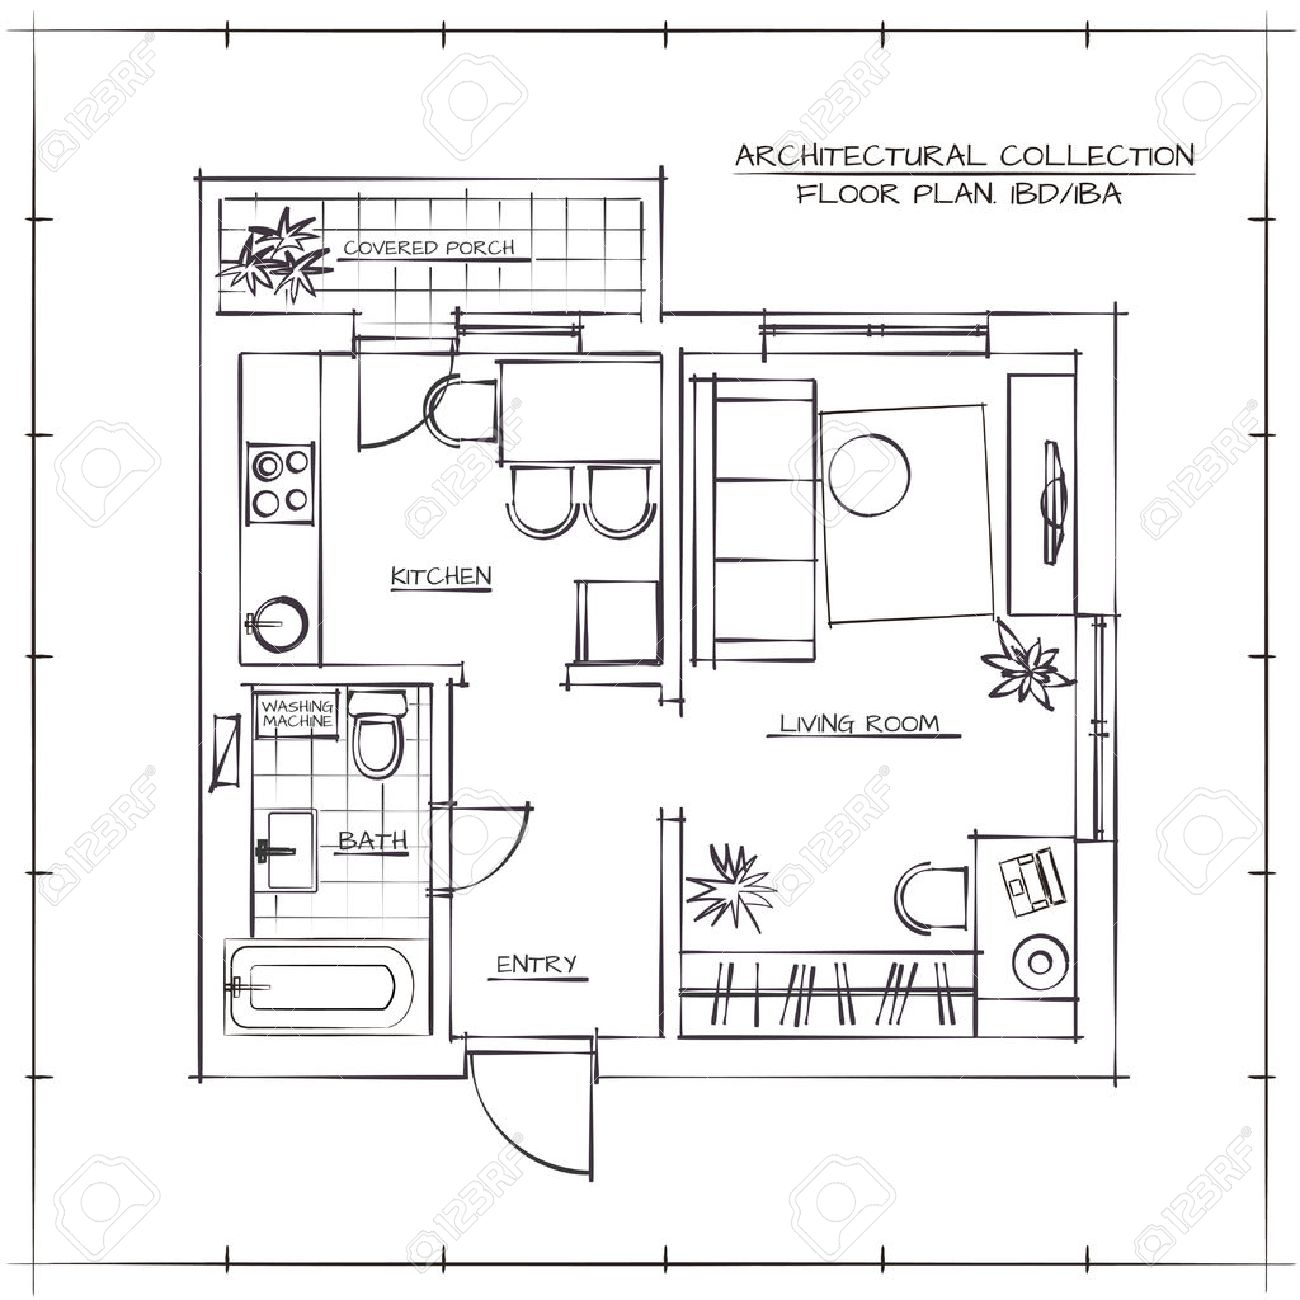 Architectural Hand Drawn Floor Plan.One Bedroom Apartment Stock Vector    55412707